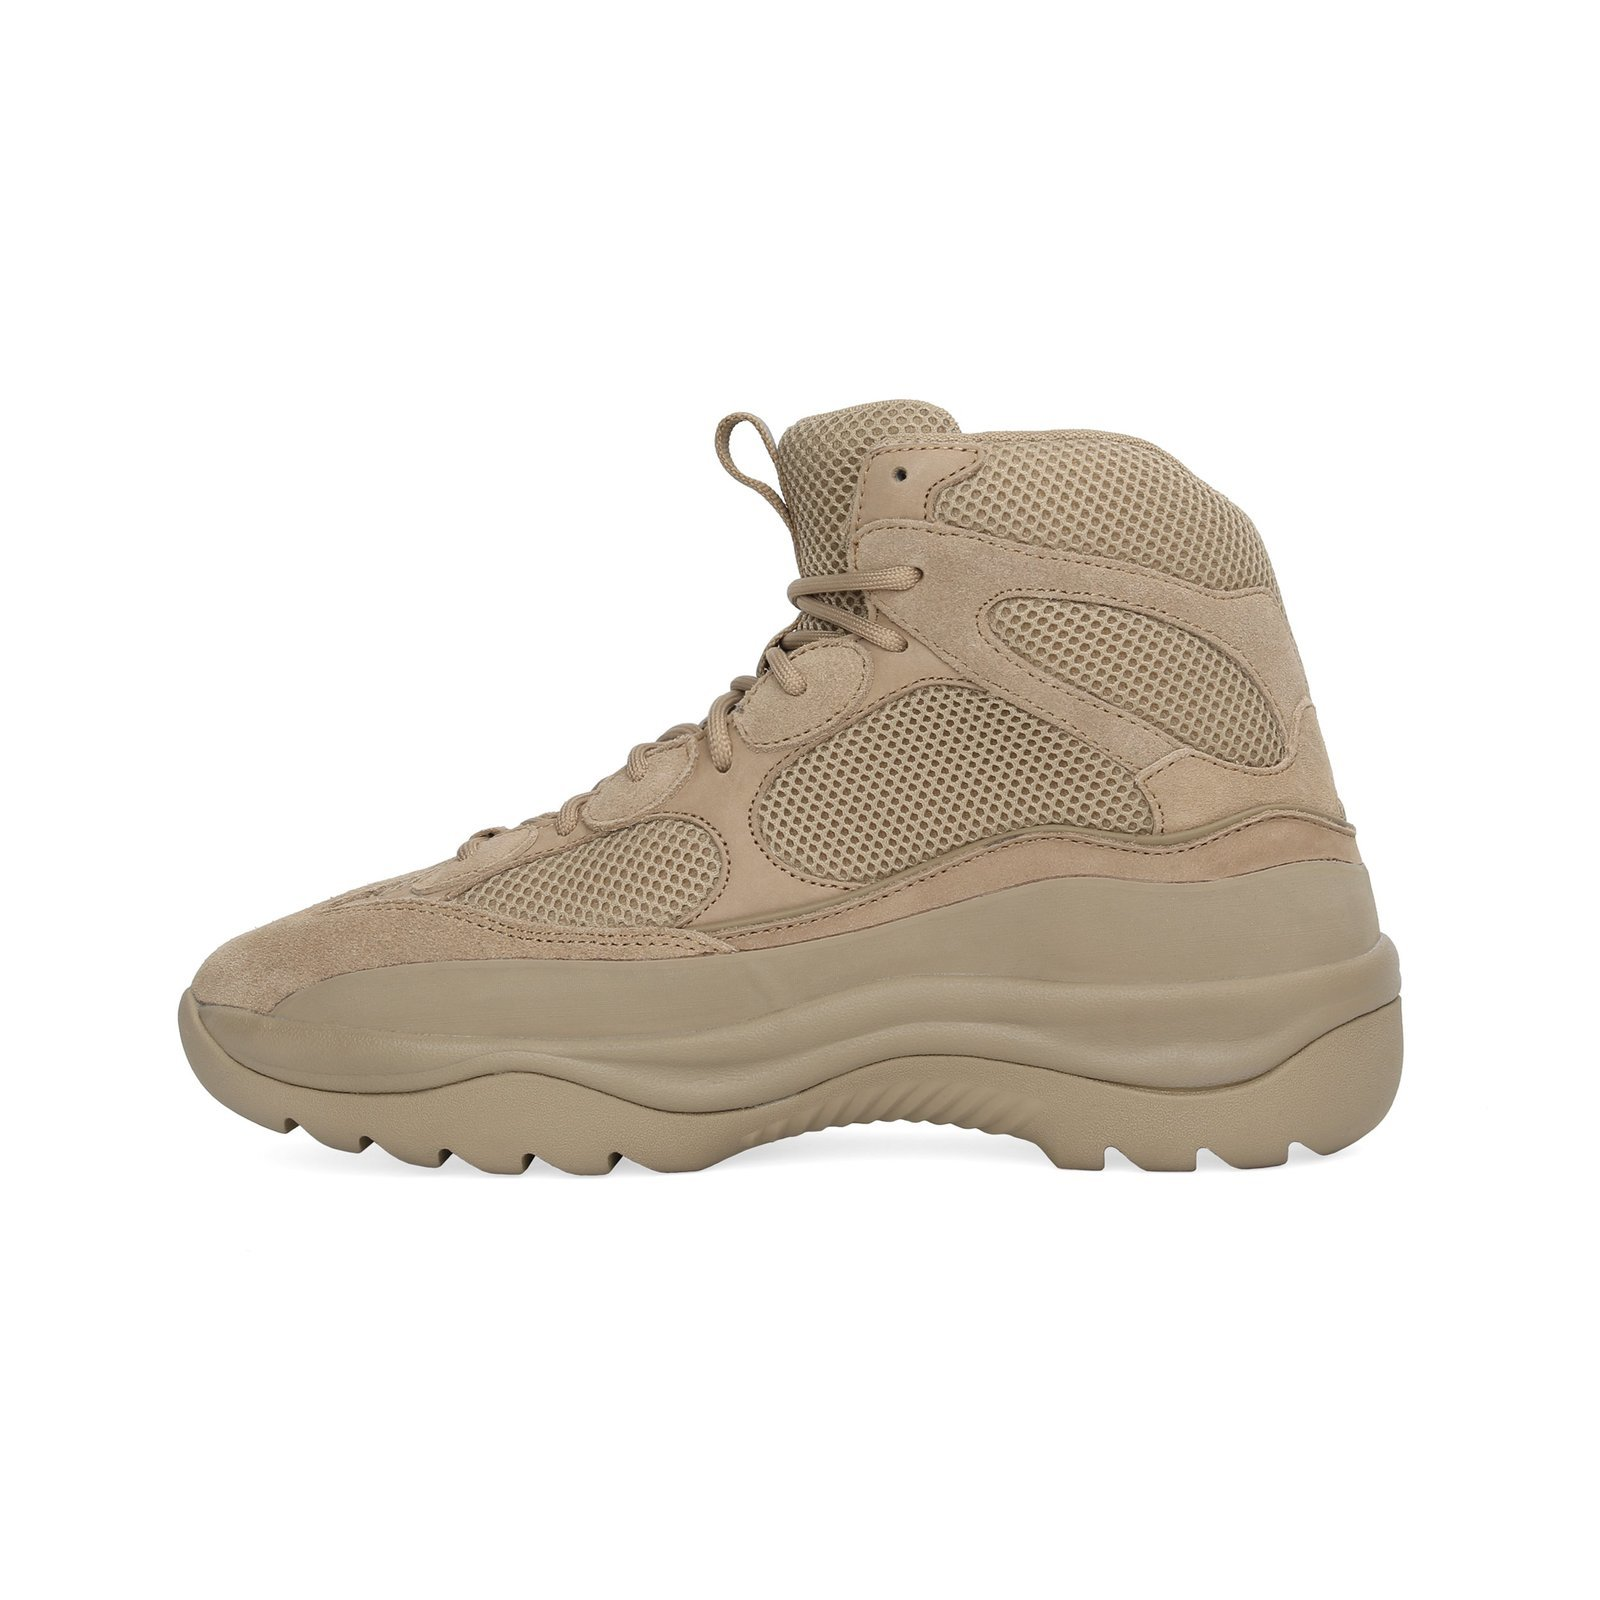 YEEZY SEASON 6 Suede Desert Boots TAUPE